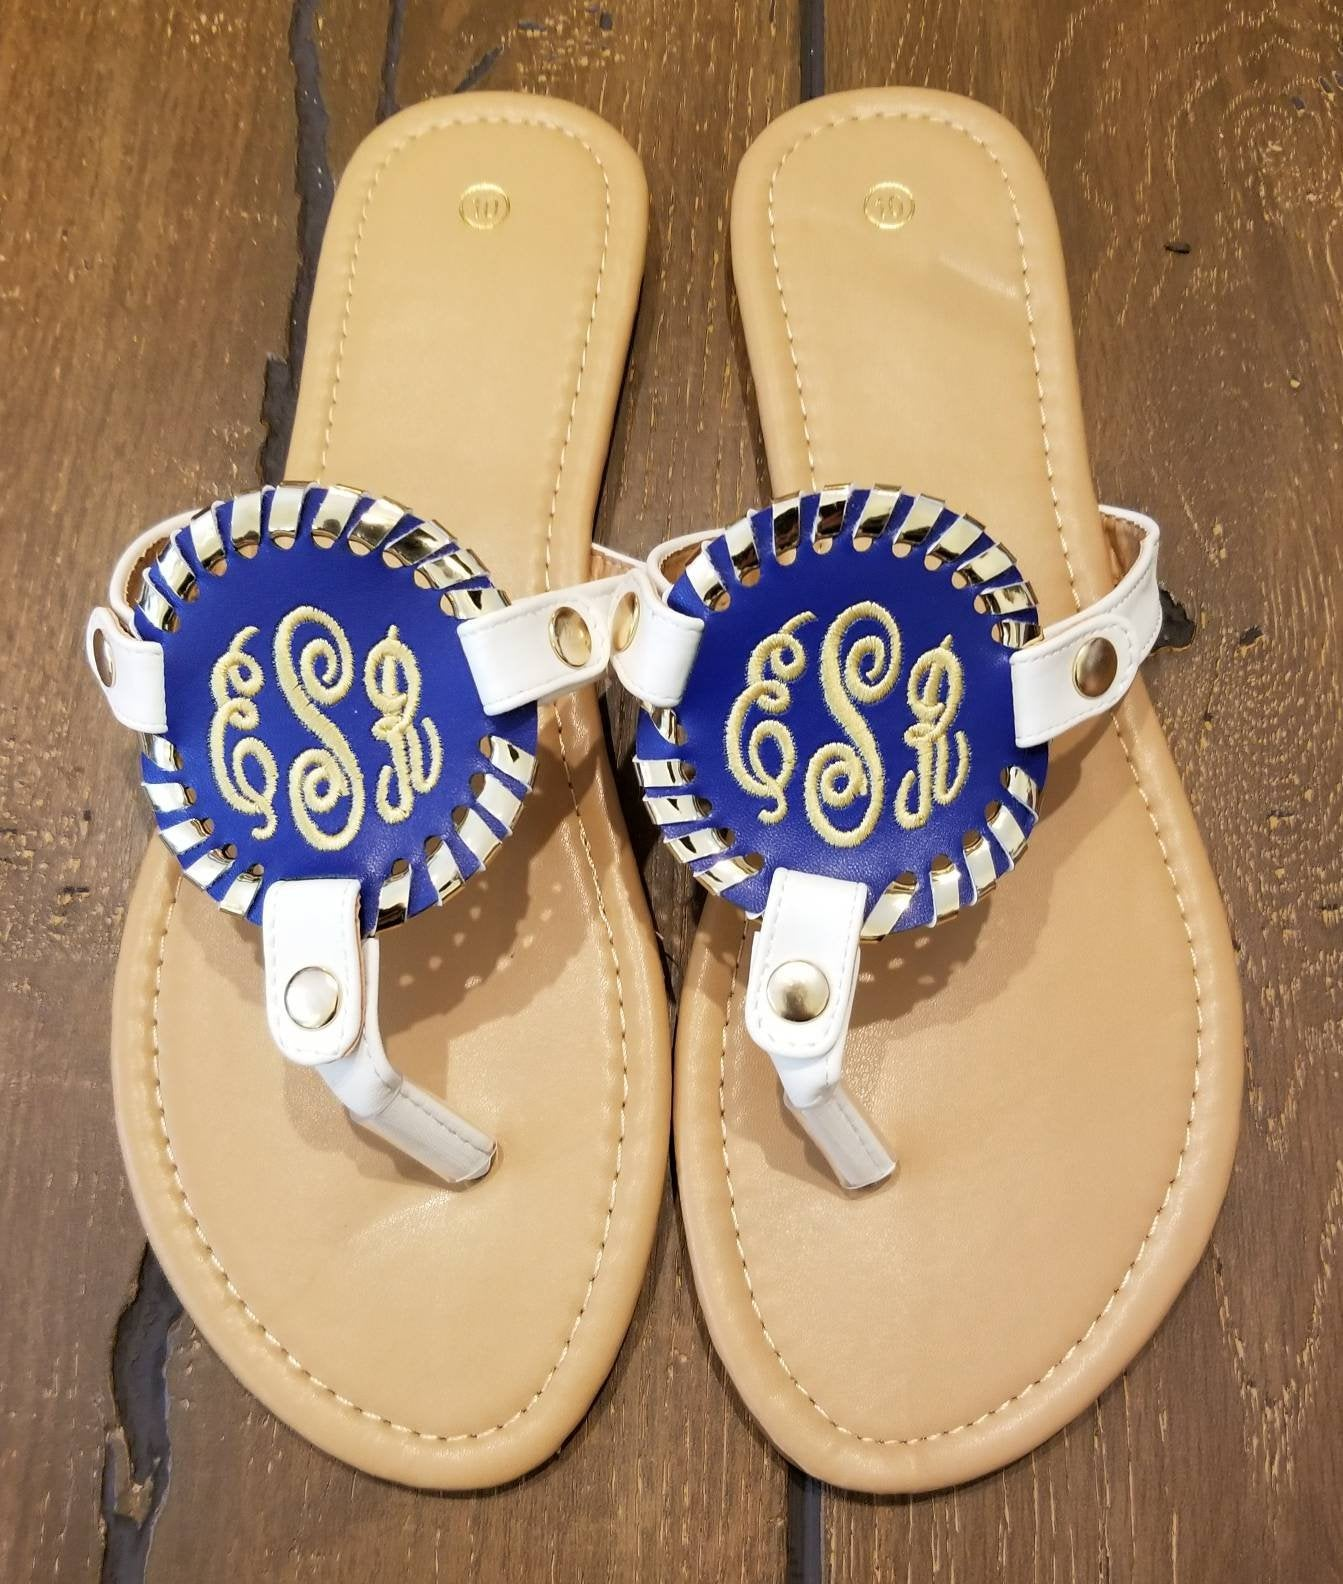 Monogrammed Disc Medallions (Discs Only)  Embroidered Discs, Interchangeable Discs, Lily, Solid, and Baseball Discs - Sandals Not Included